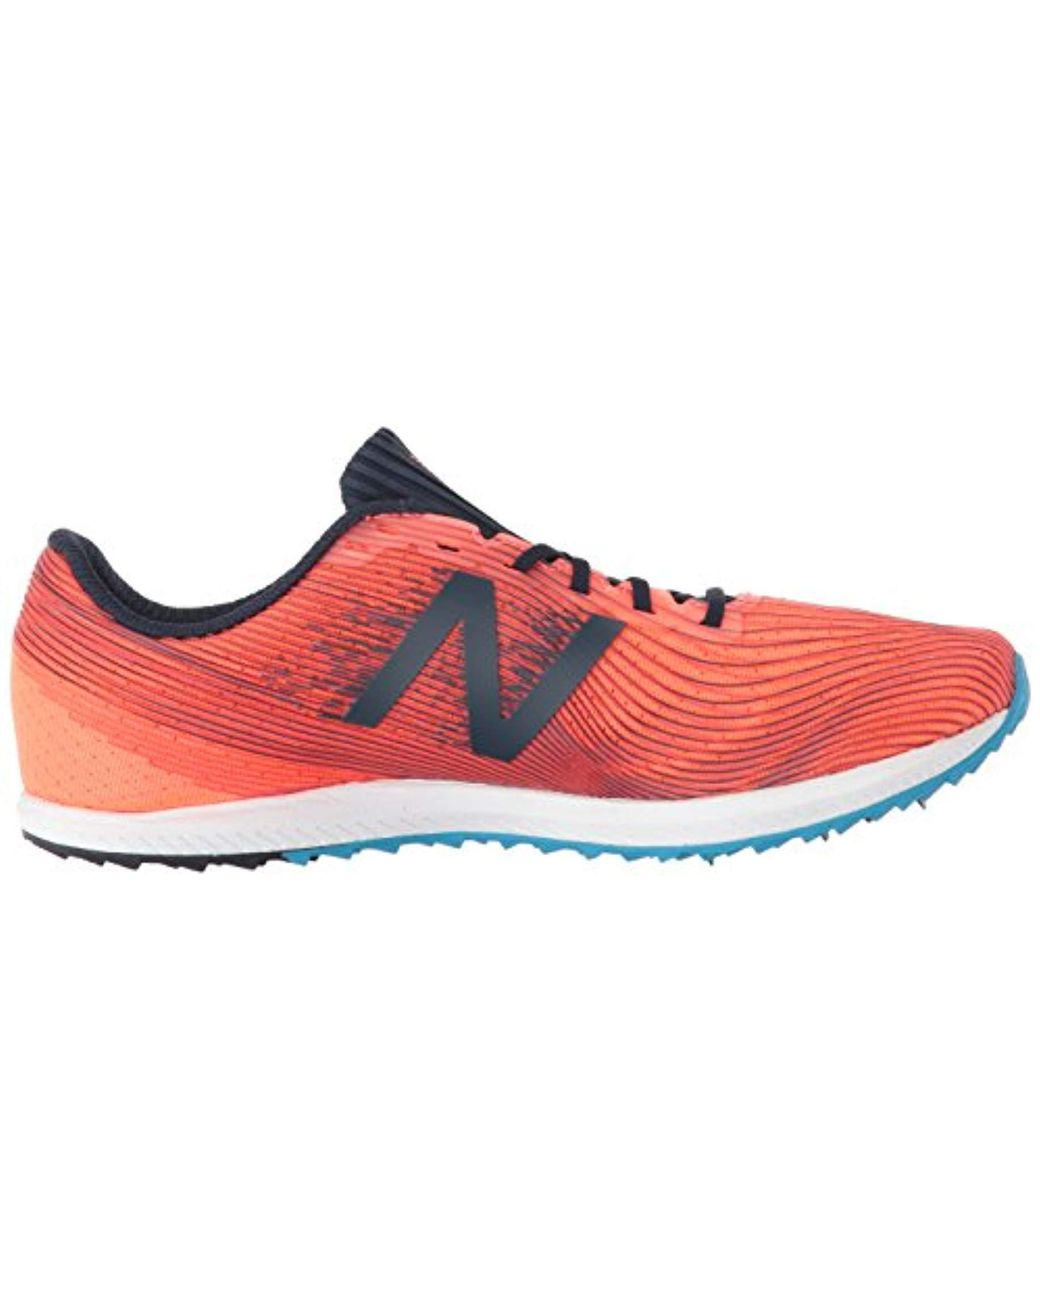 35a304d78796a New Balance 7v1 Cross Country Running Shoe in Orange - Lyst